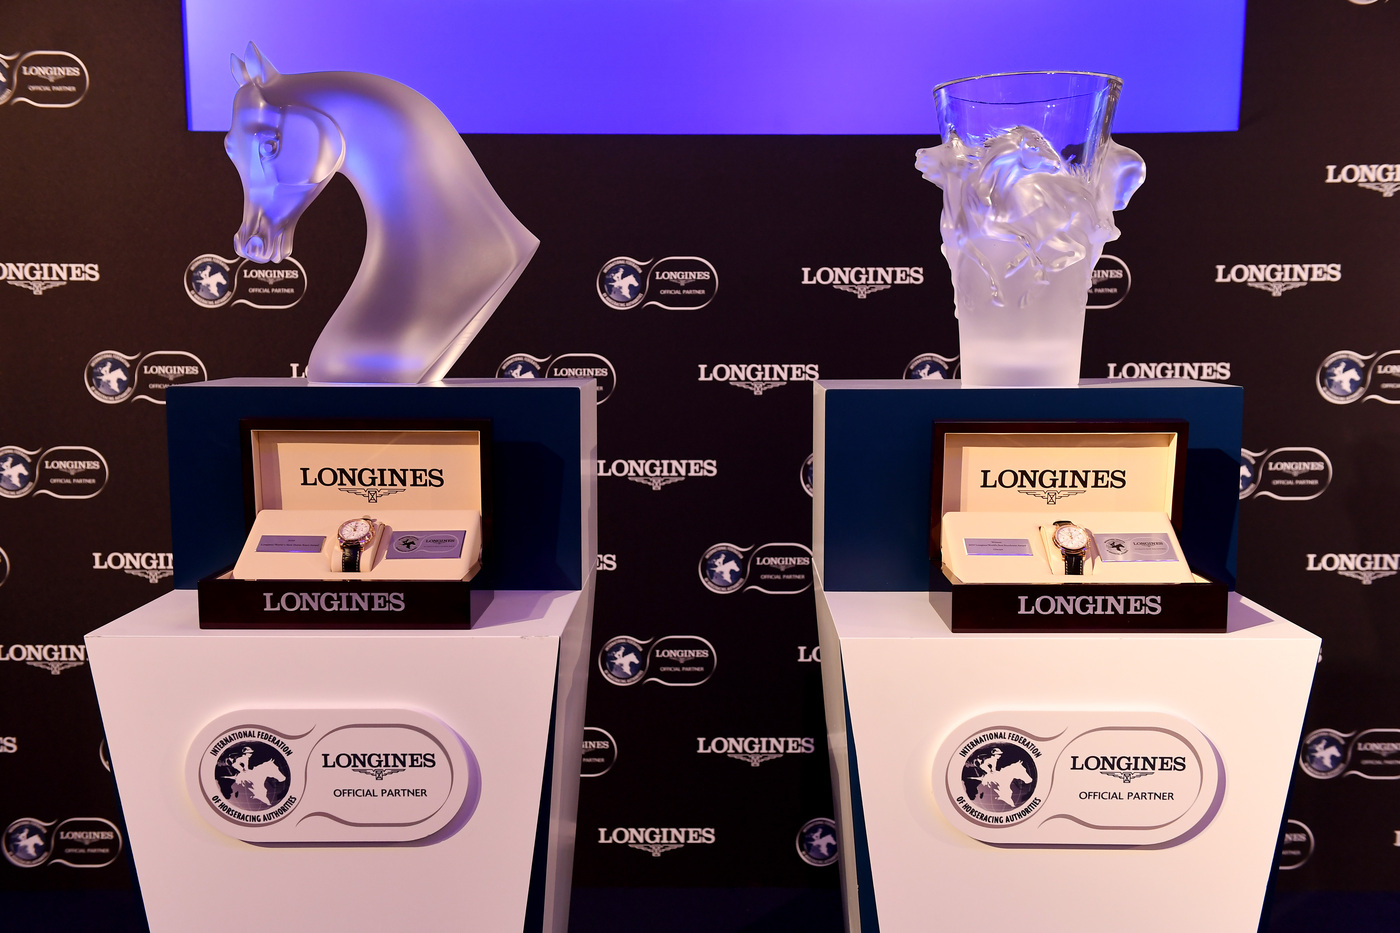 Longines Flat Racing Event: Crystal Ocean, Enable and Waldgeist crowned the 2019 Longines World's Best Racehorses, Qatar Prix de l'Arc de Triomphe named Longines World's Best Horse Race for the fourth time 11